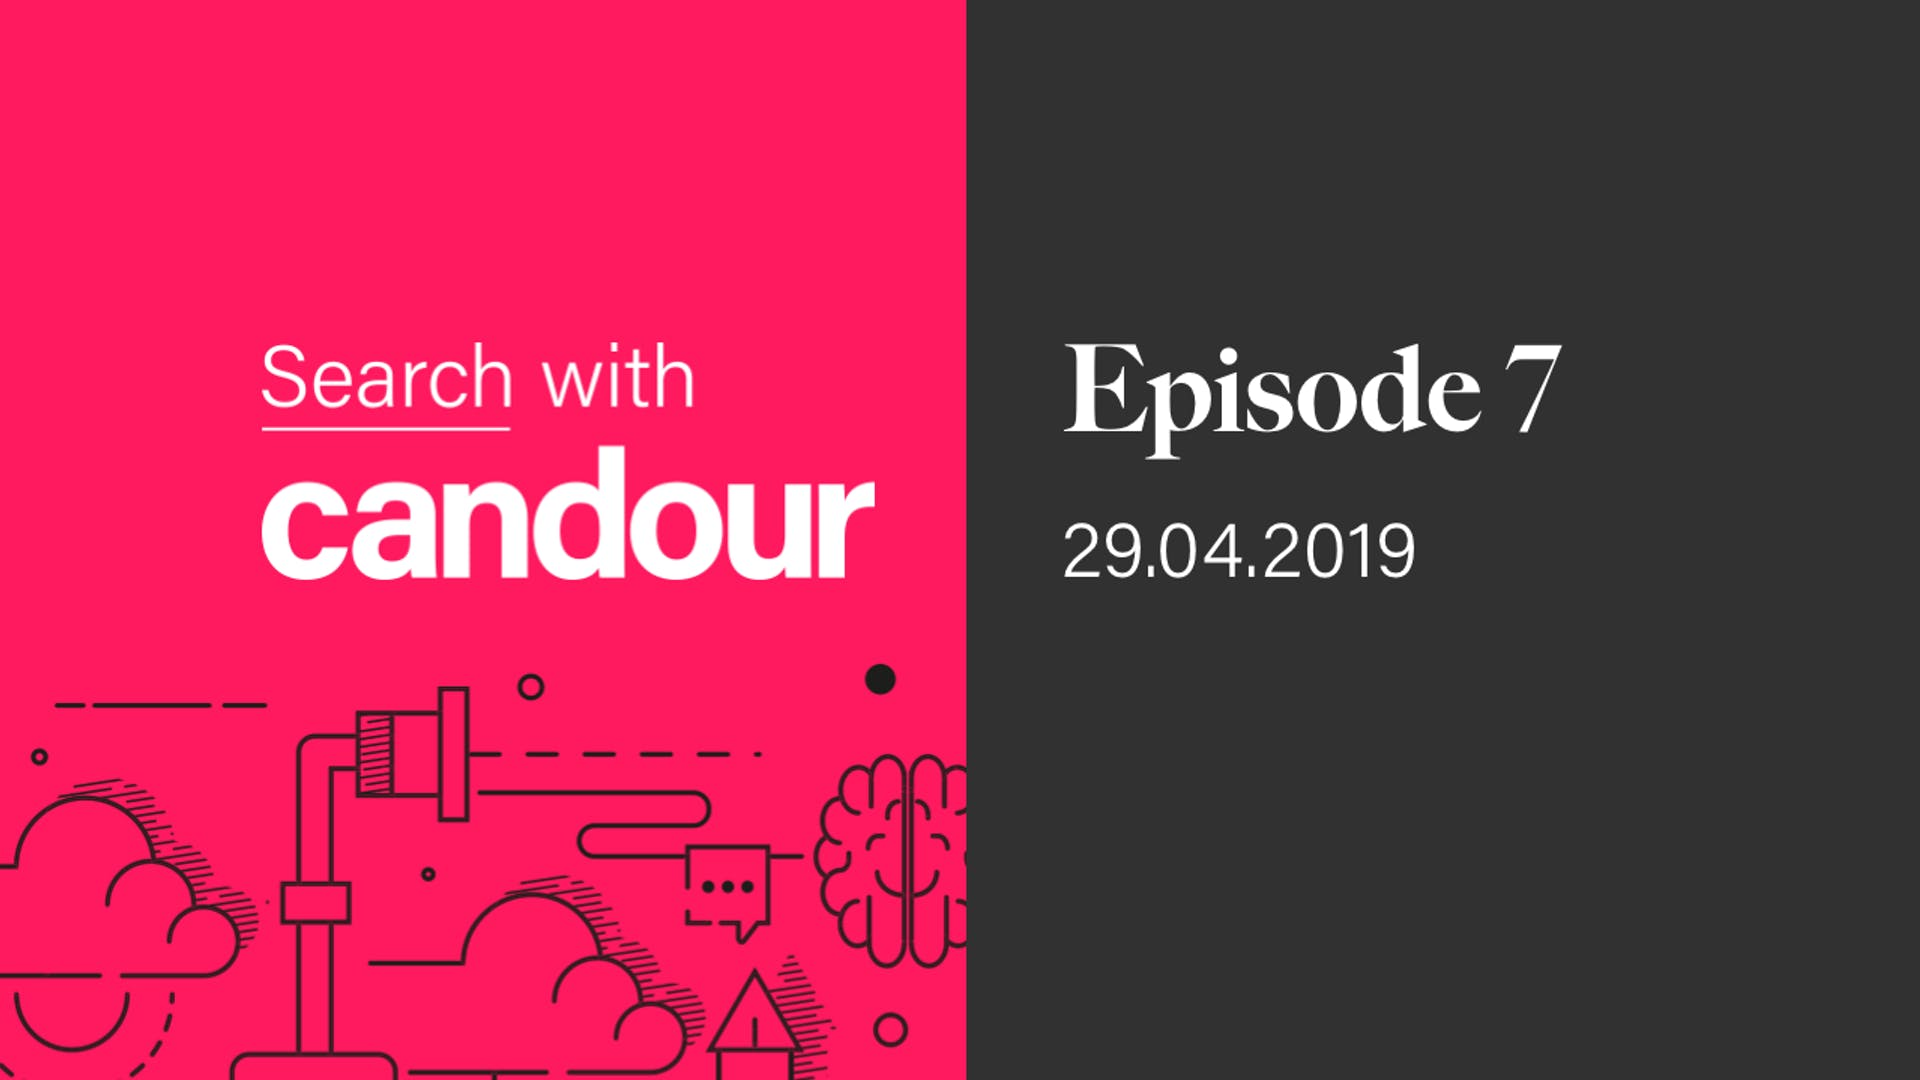 Search with Candour podcast - Episode 7